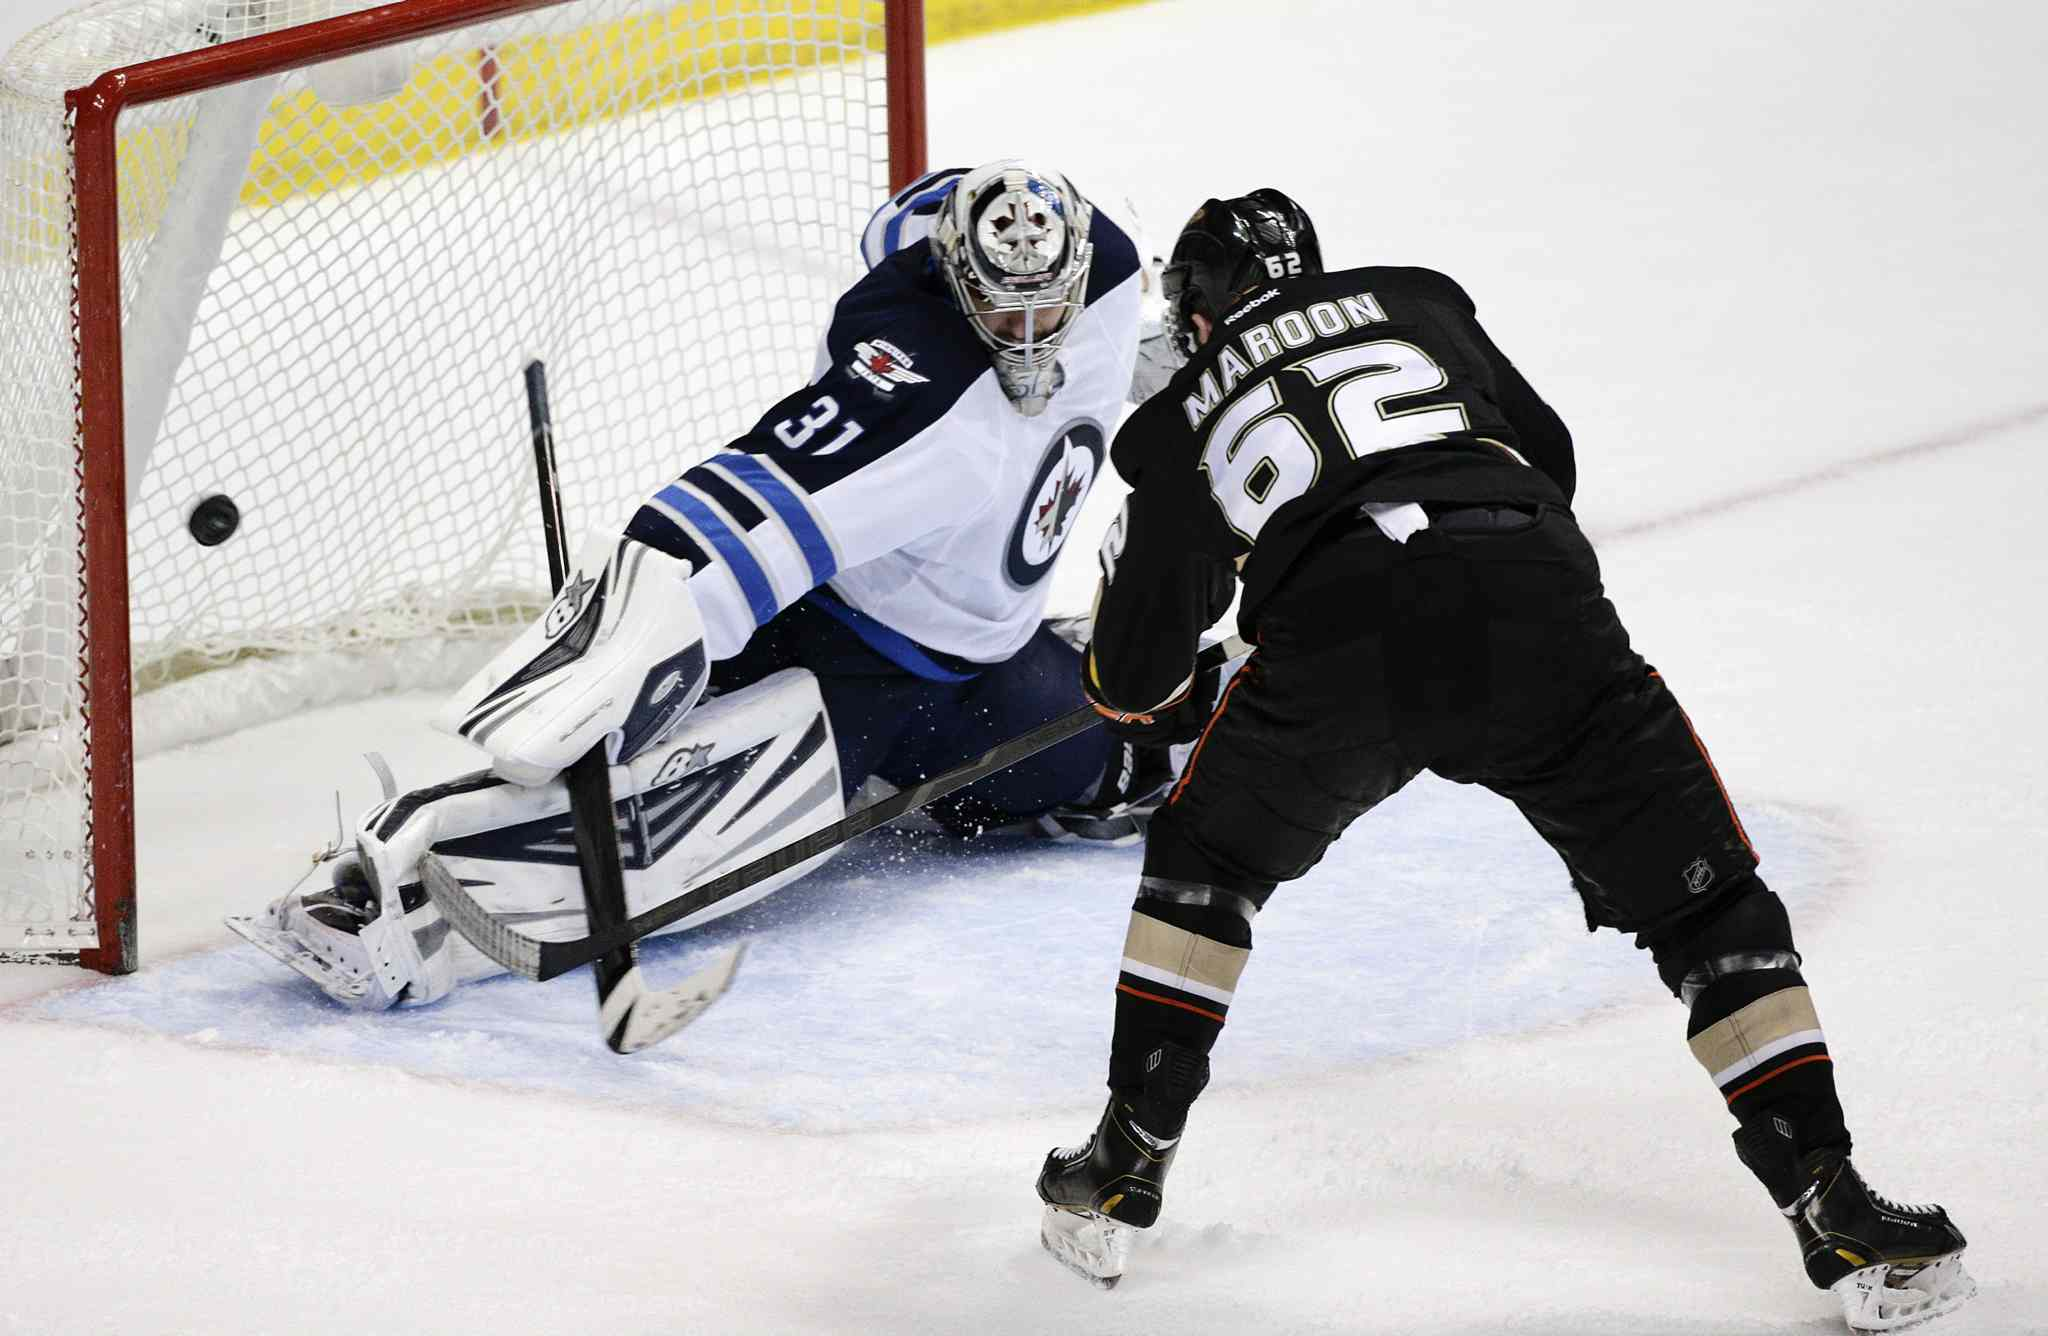 Winnipeg Jets' goalie Ondrej Pavelec deflects a second-period shot by Anaheim Ducks' Patrick Maroon in Anaheim Tuesday.